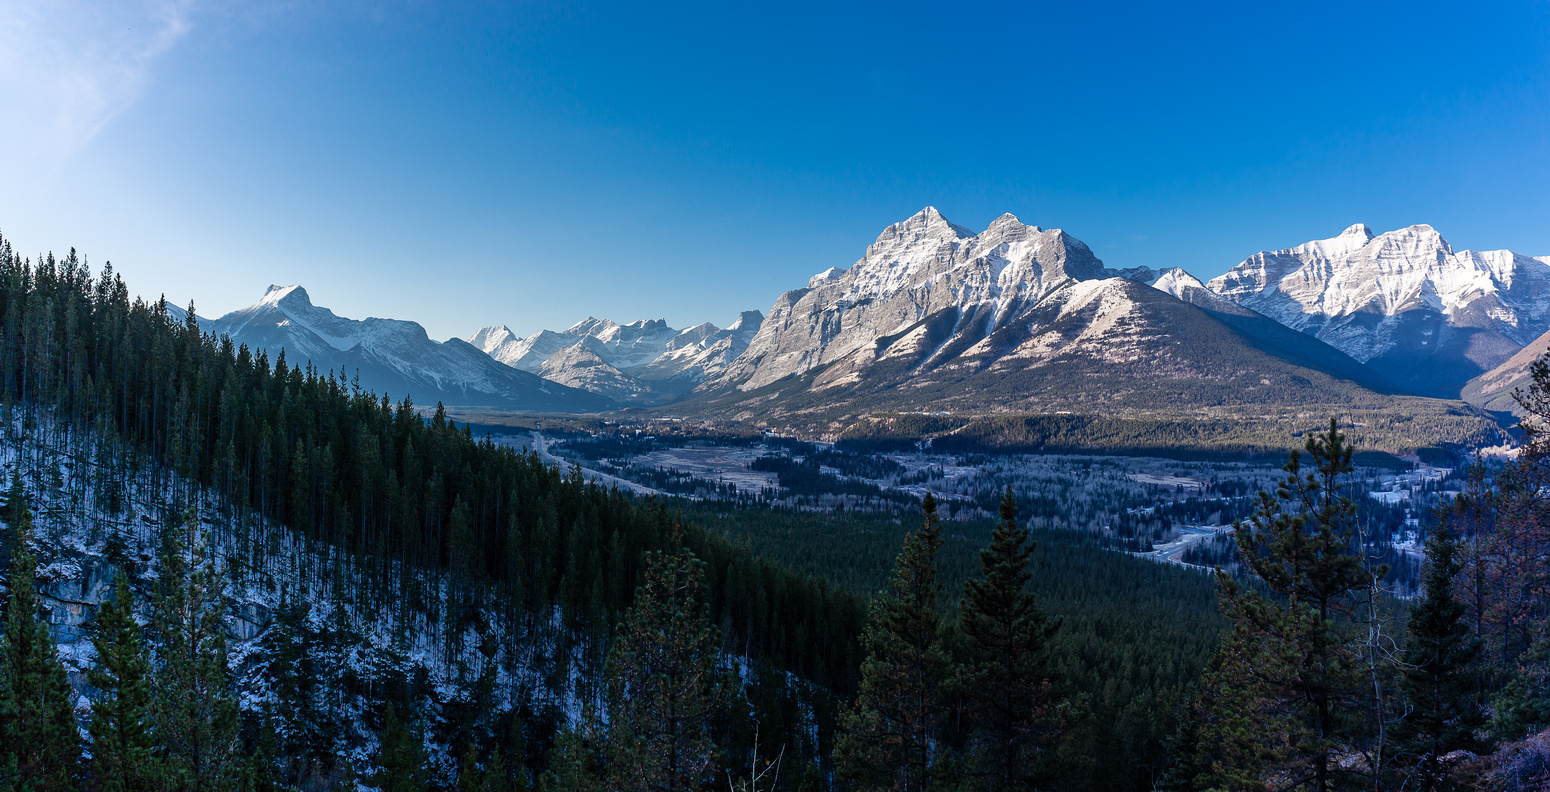 The Kananaskis valley looks nice with a dusting of snow. The Wedge at left and Kidd at right.